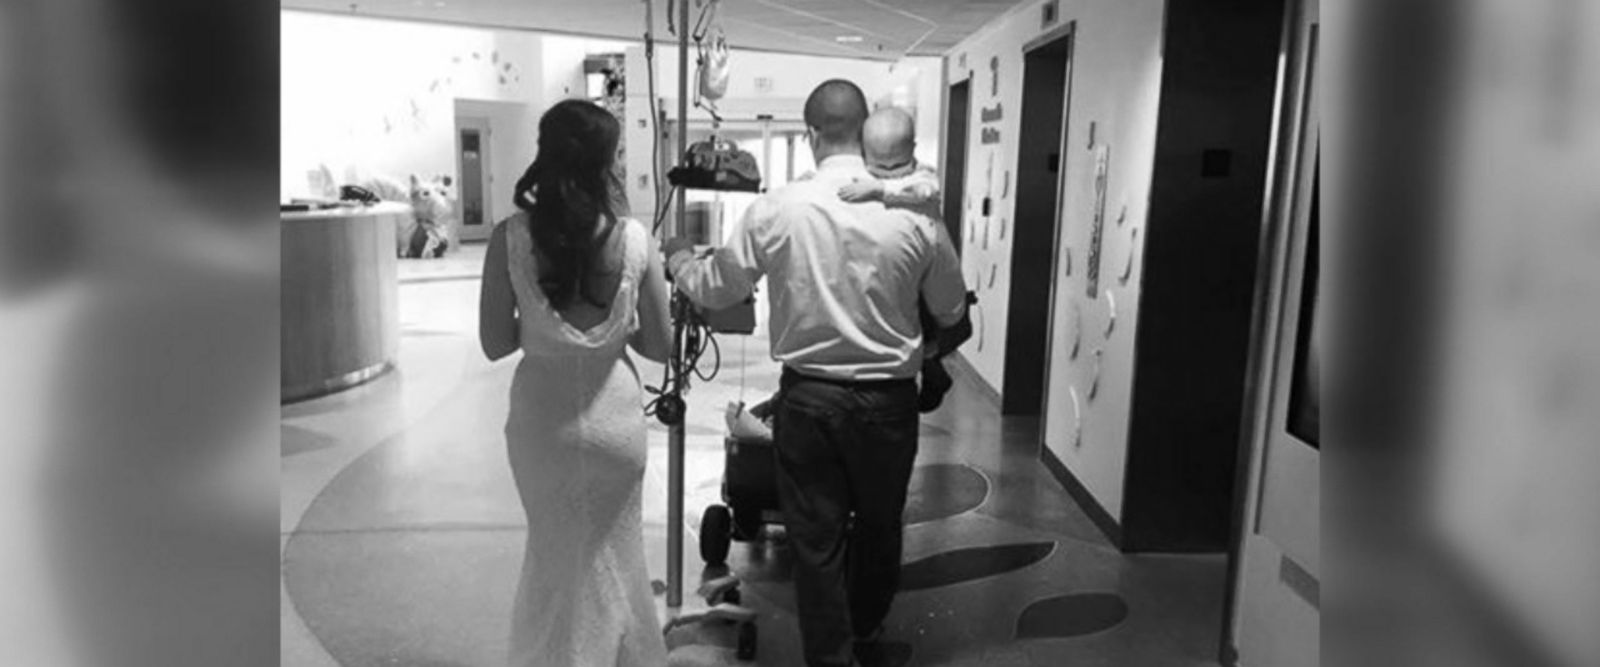 Celia Kinzel, 26, and Geff Kinzel, 32, wed in the chapel of Nationwide Children's Hospital in Columbus, Ohio, where their son Logan, 2, is a patient.